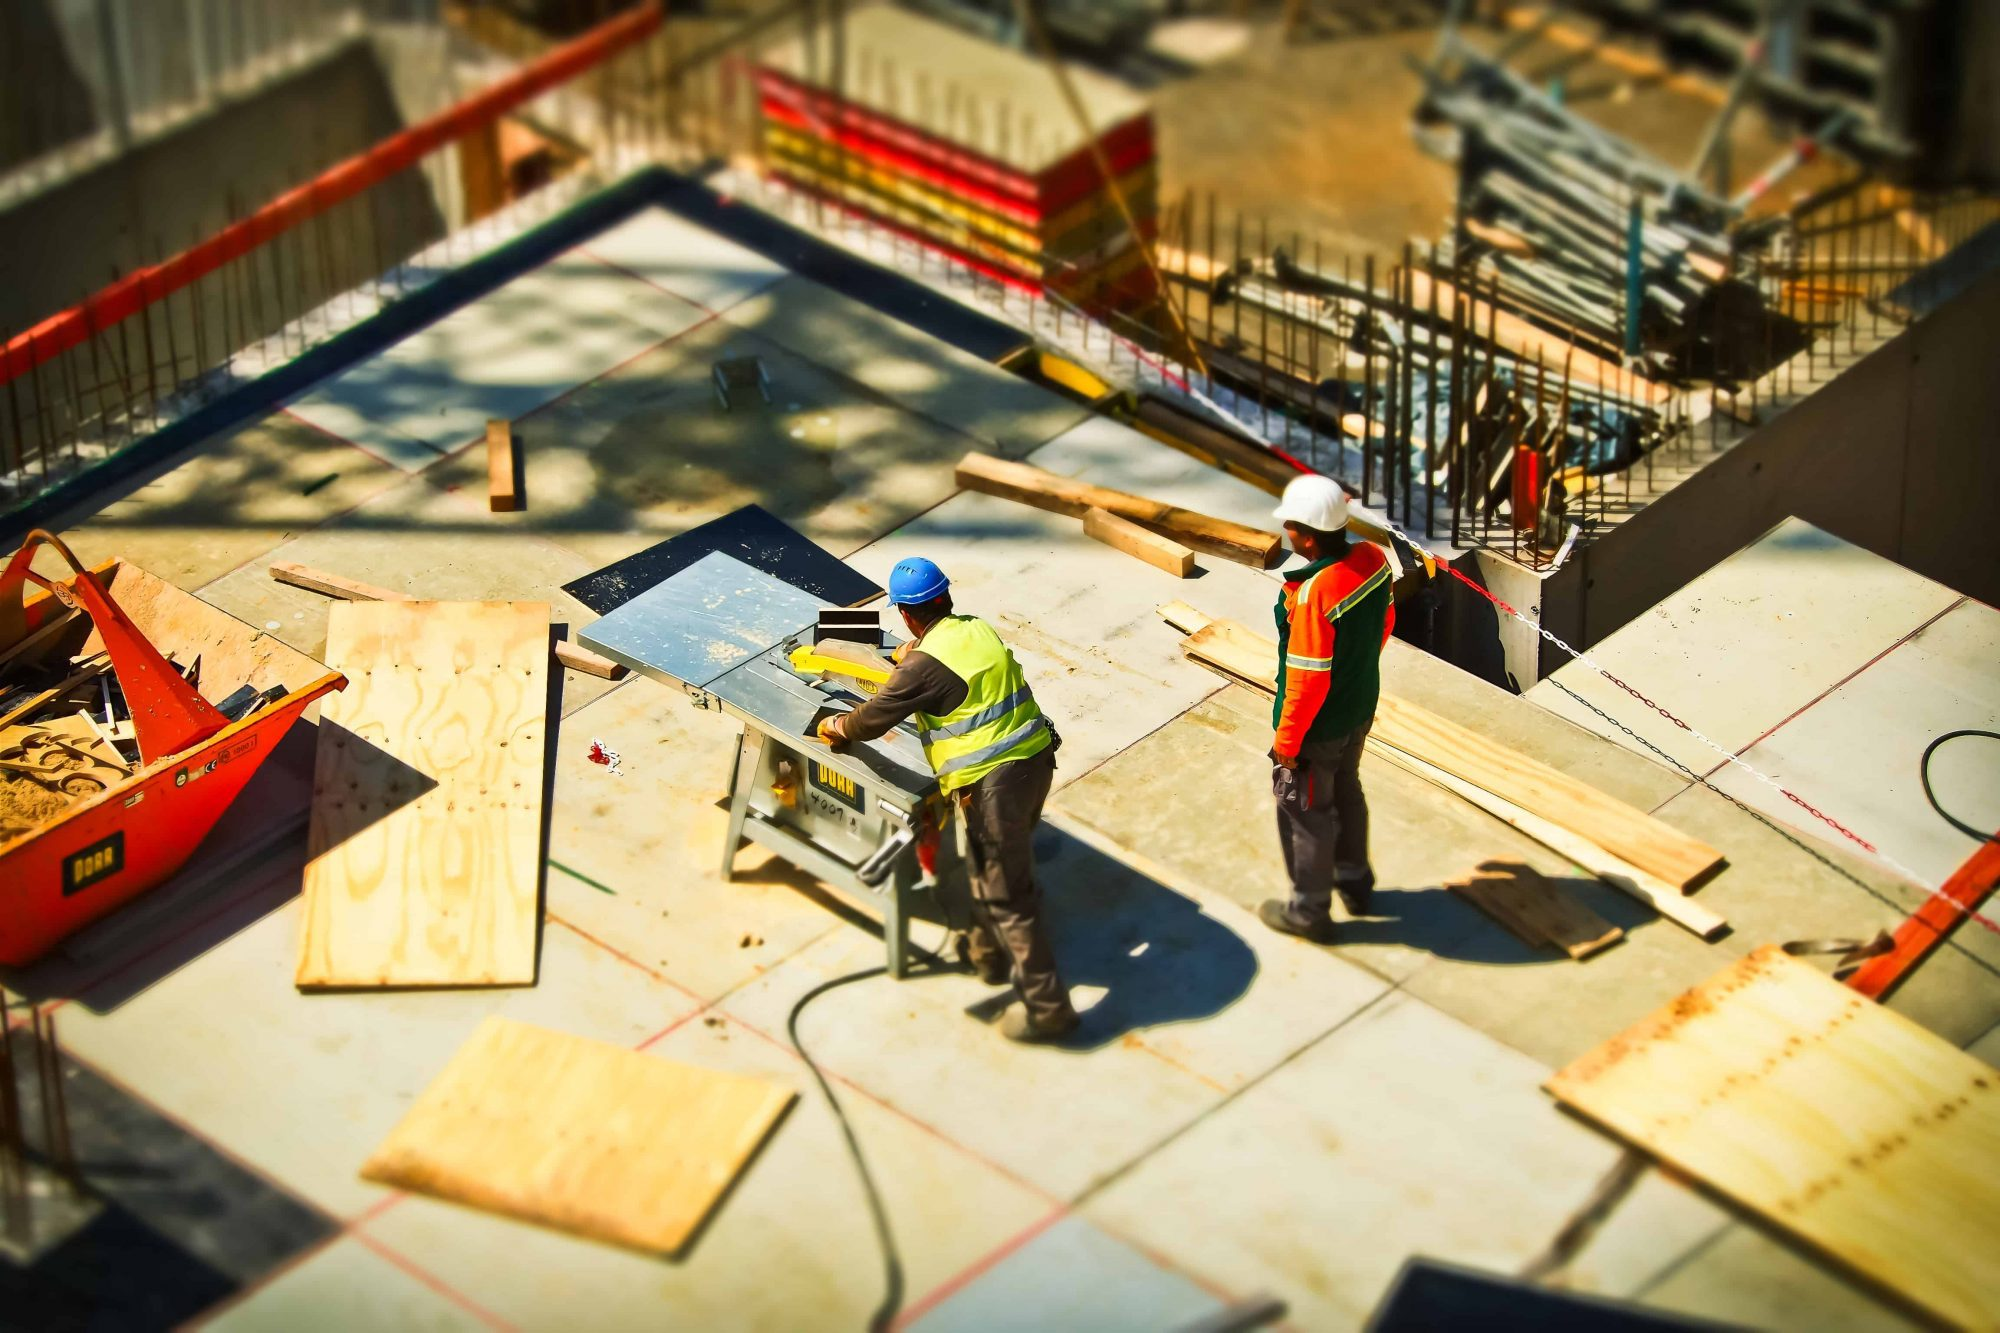 2 man on construction site during daytime stockpack pexels scaled